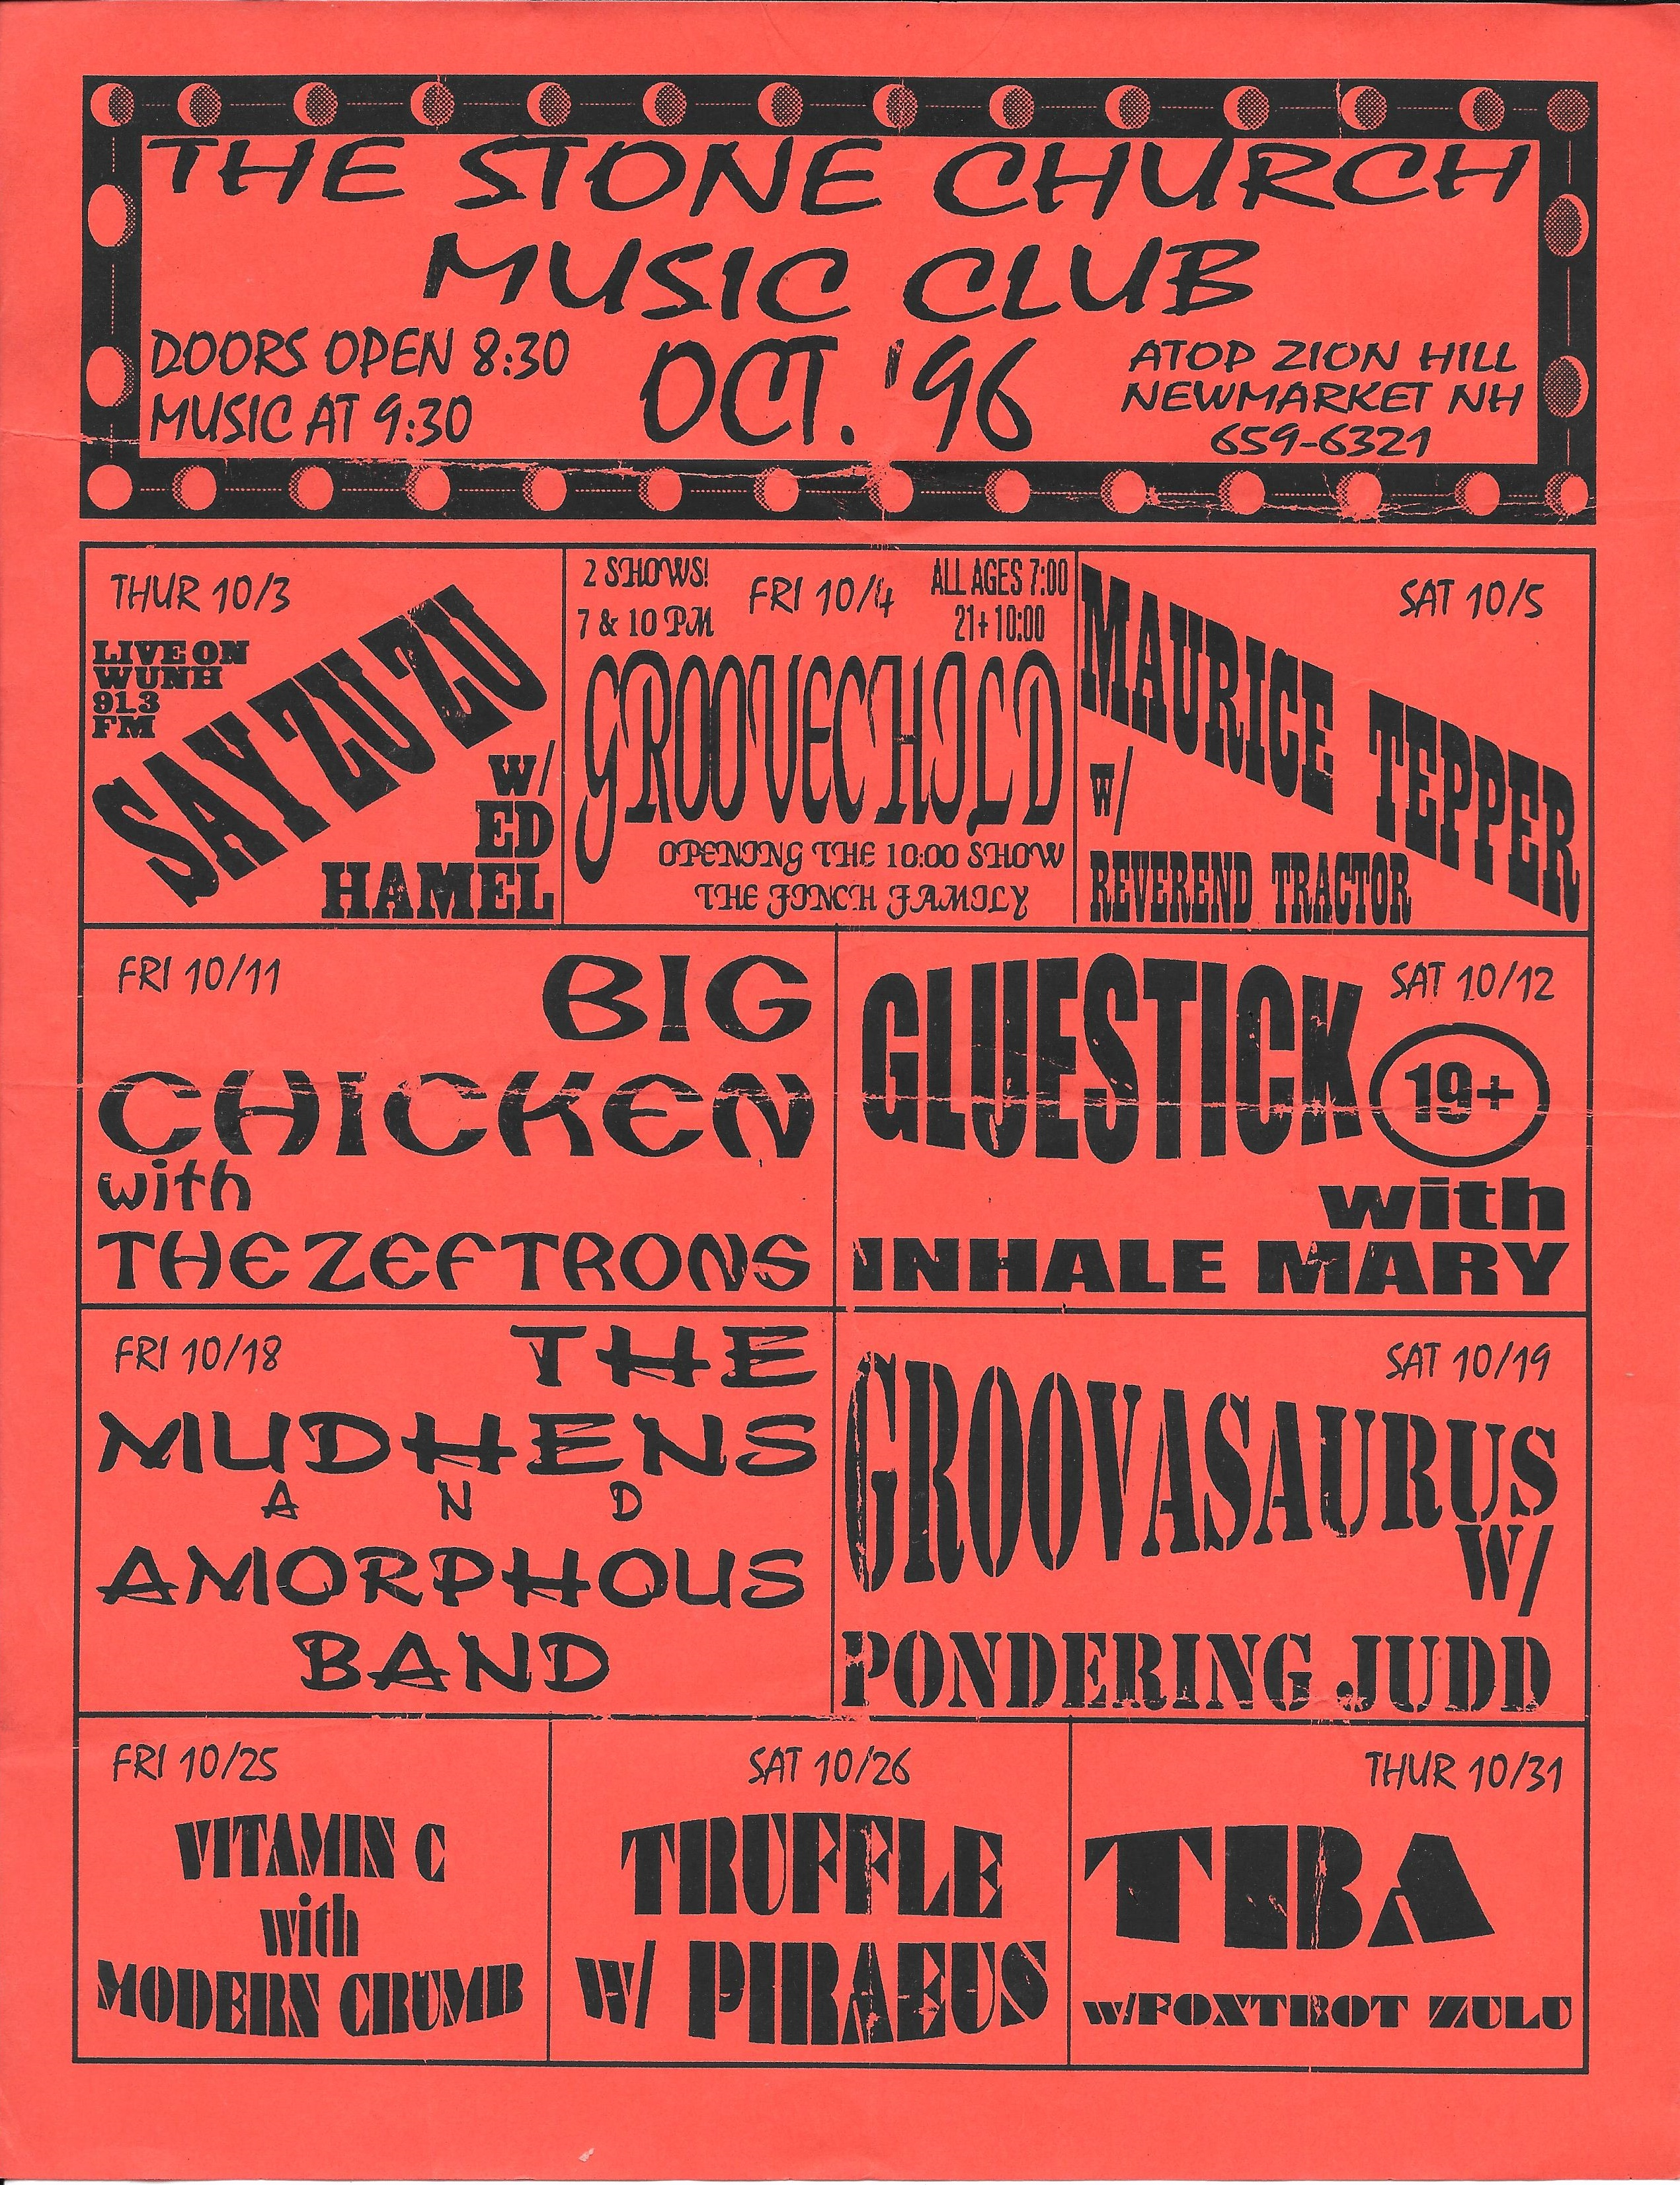 Foxtrot Zulu Live at The Stone Church on 1996-10-31 : Free